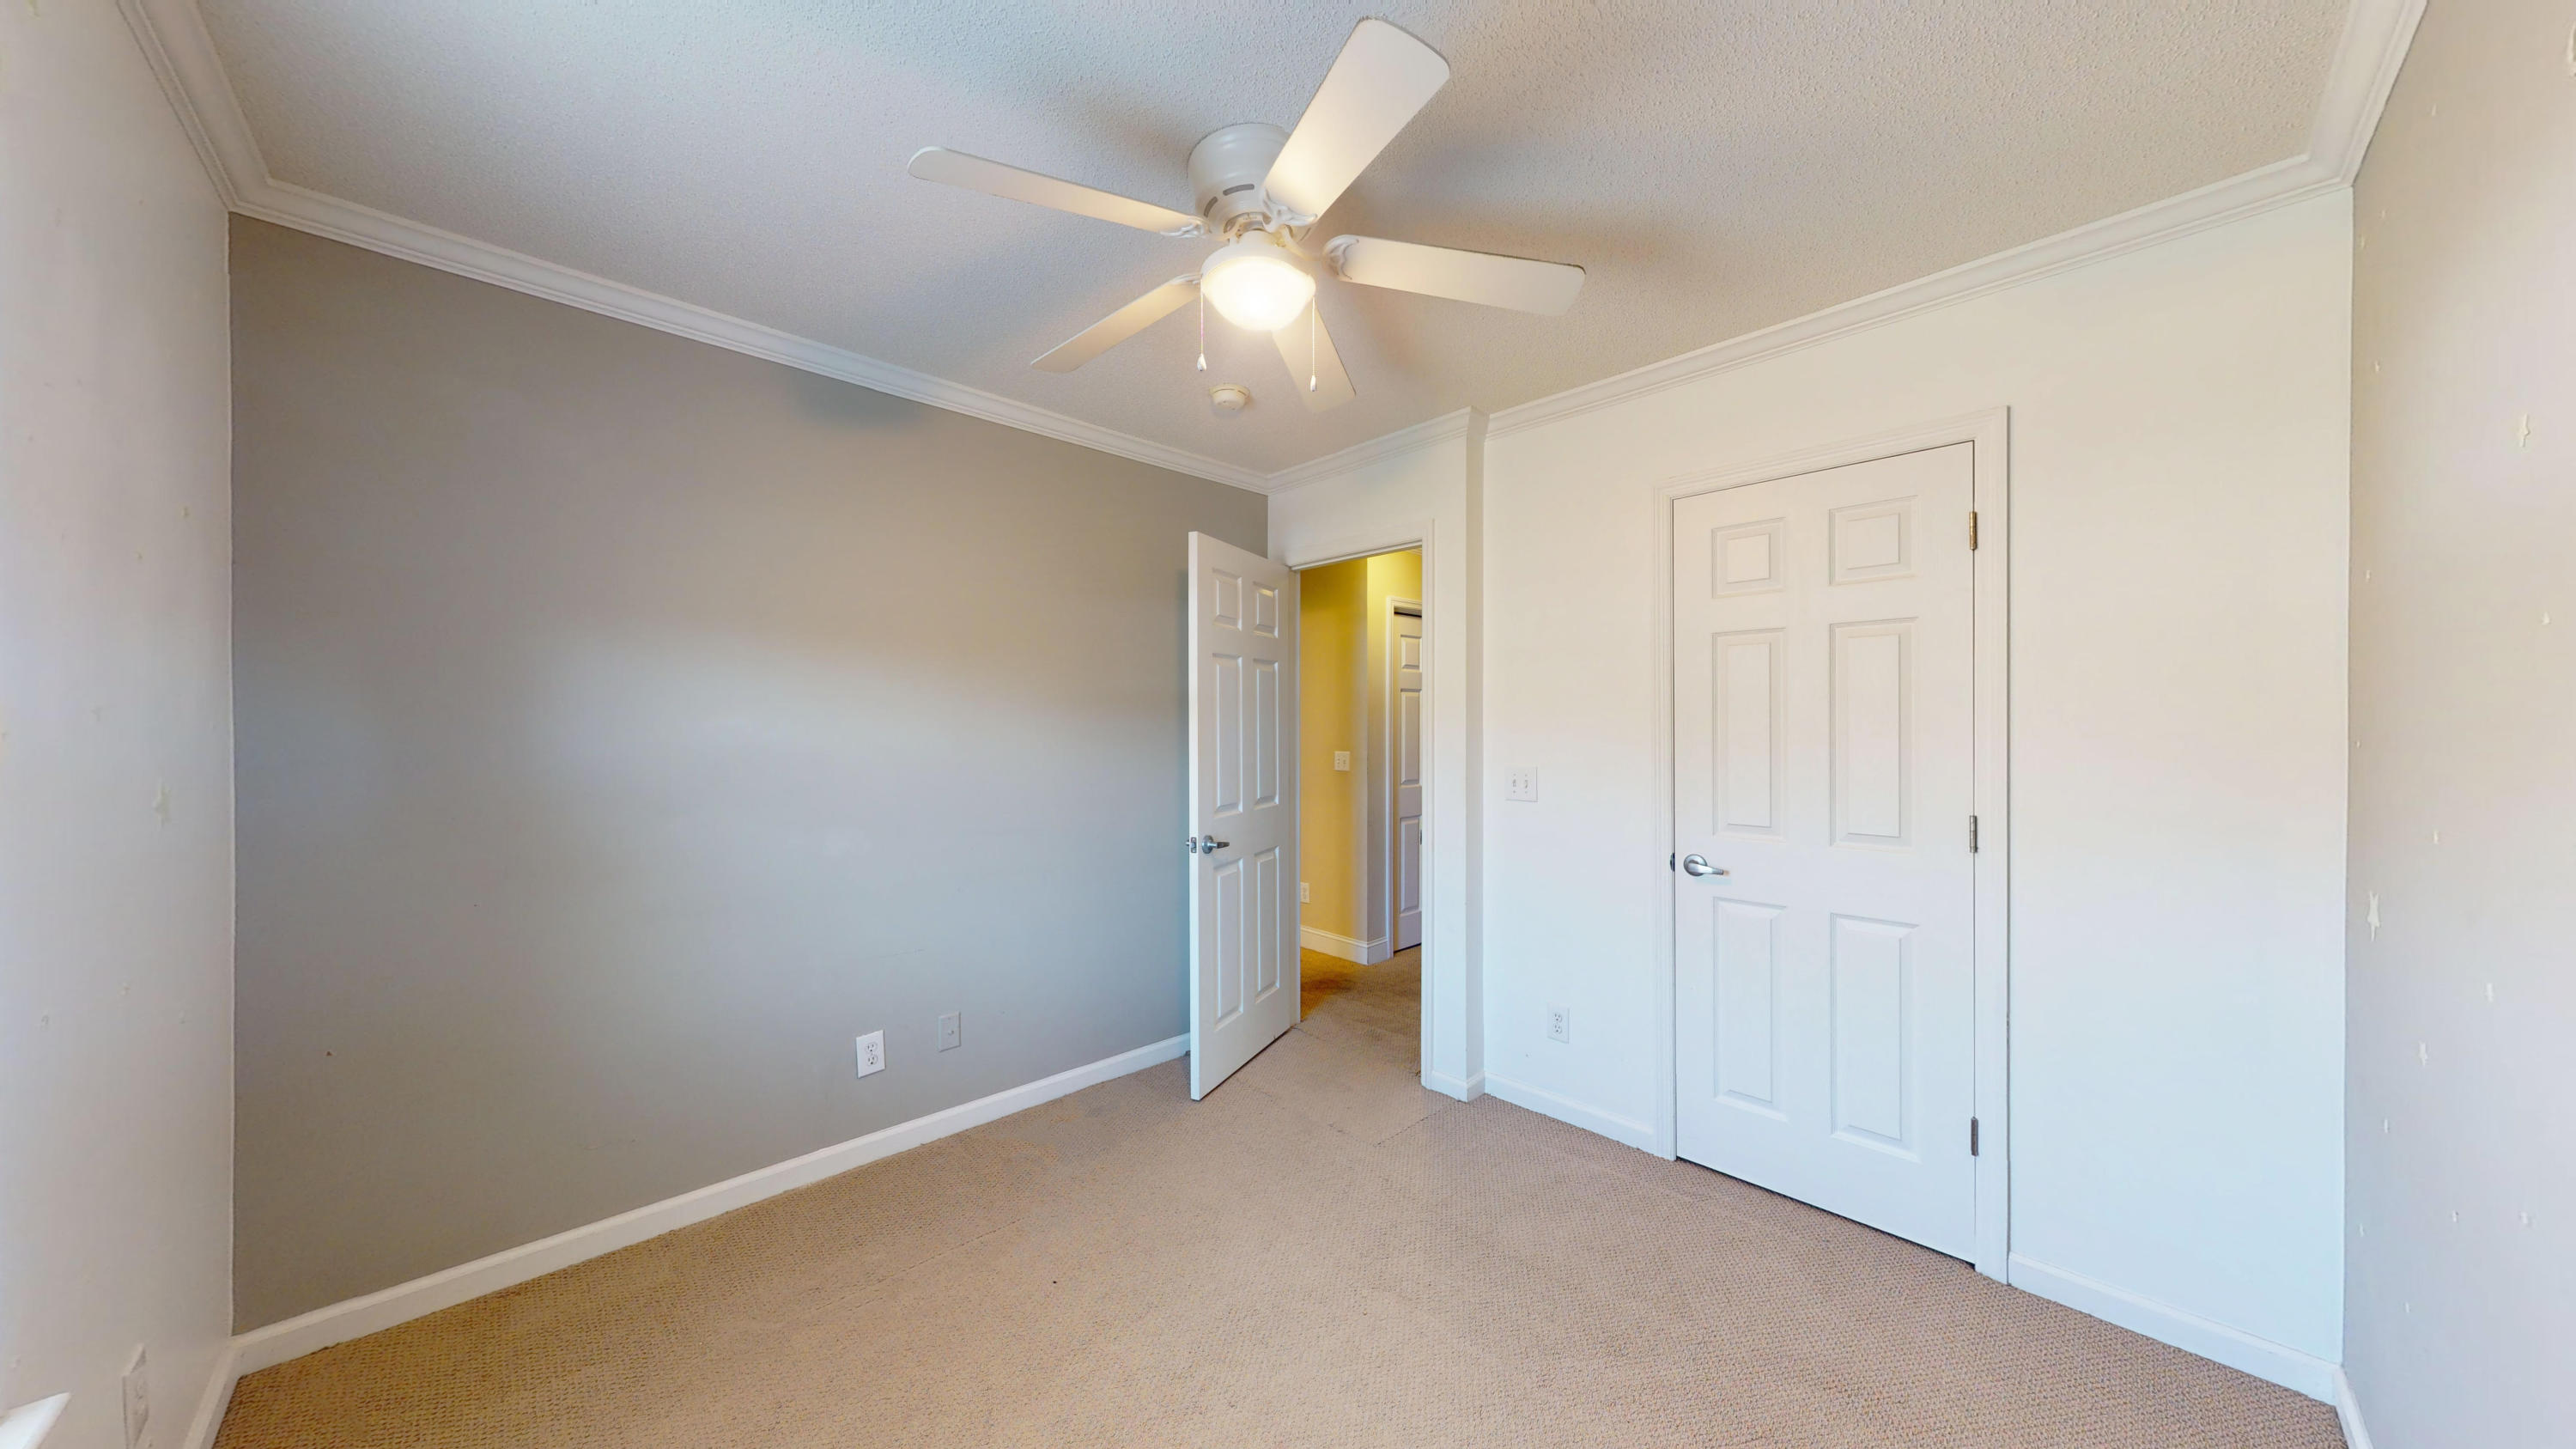 Camelot Village Homes For Sale - 113 Round Table, Goose Creek, SC - 0